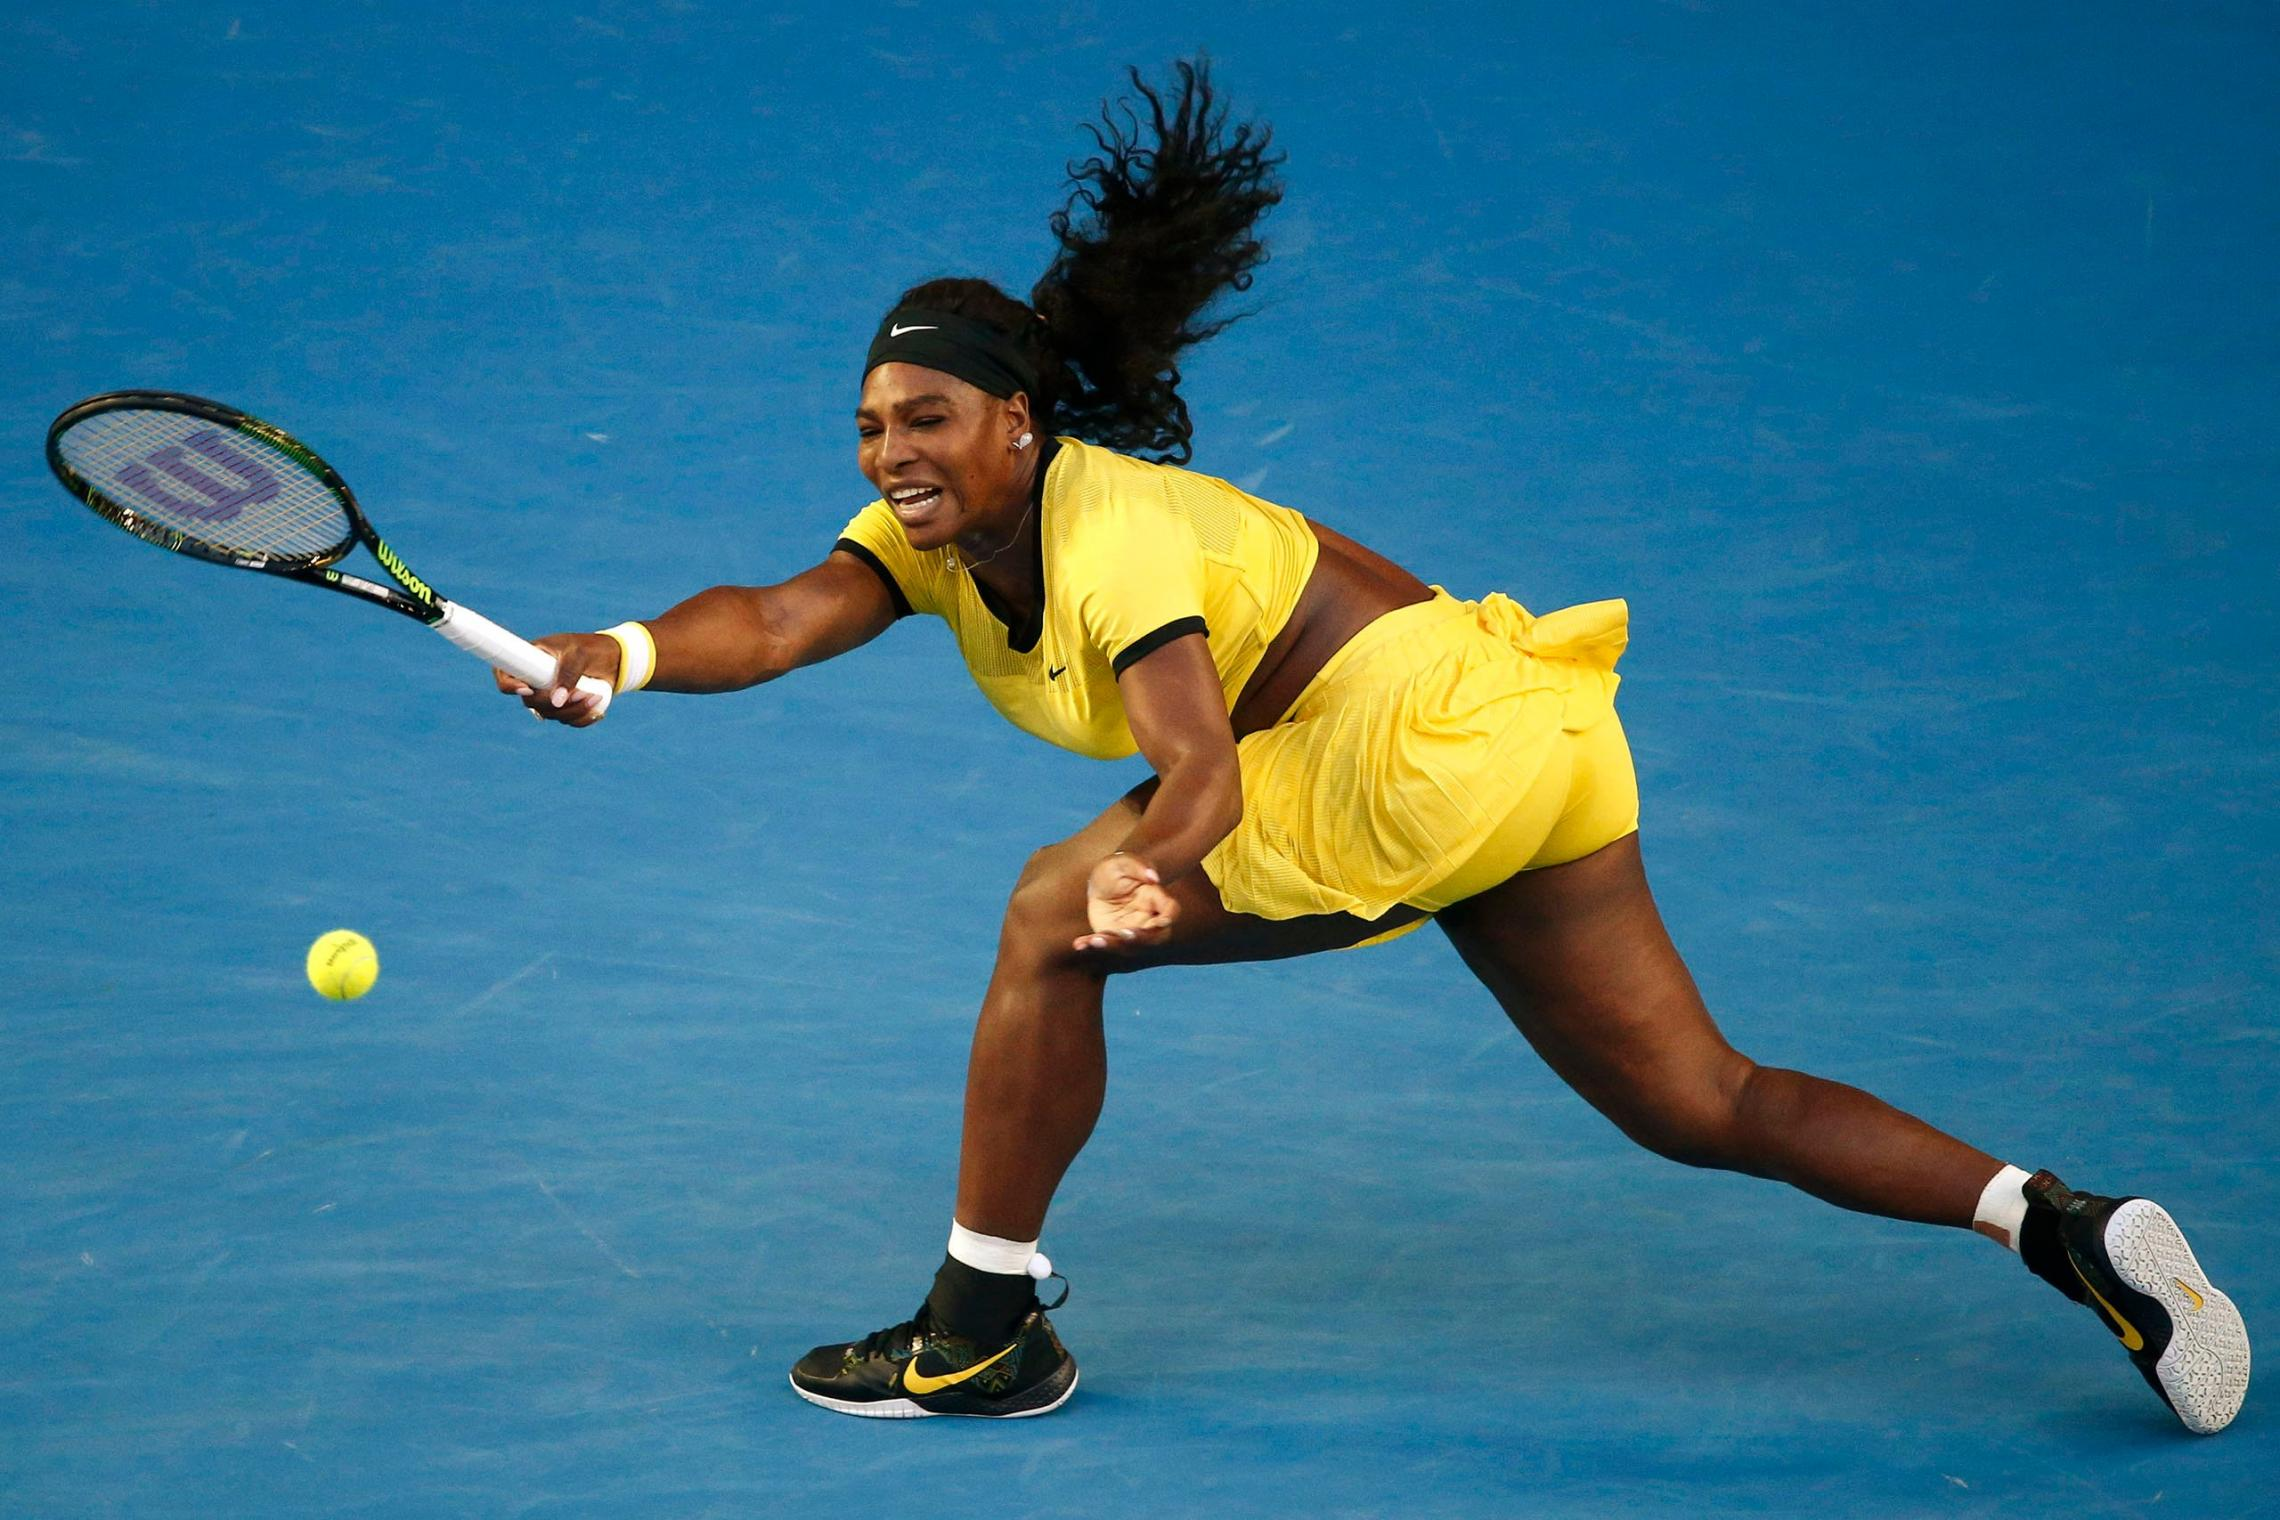 Is Serena Williams Underpaid? Women's Tennis At Match Point